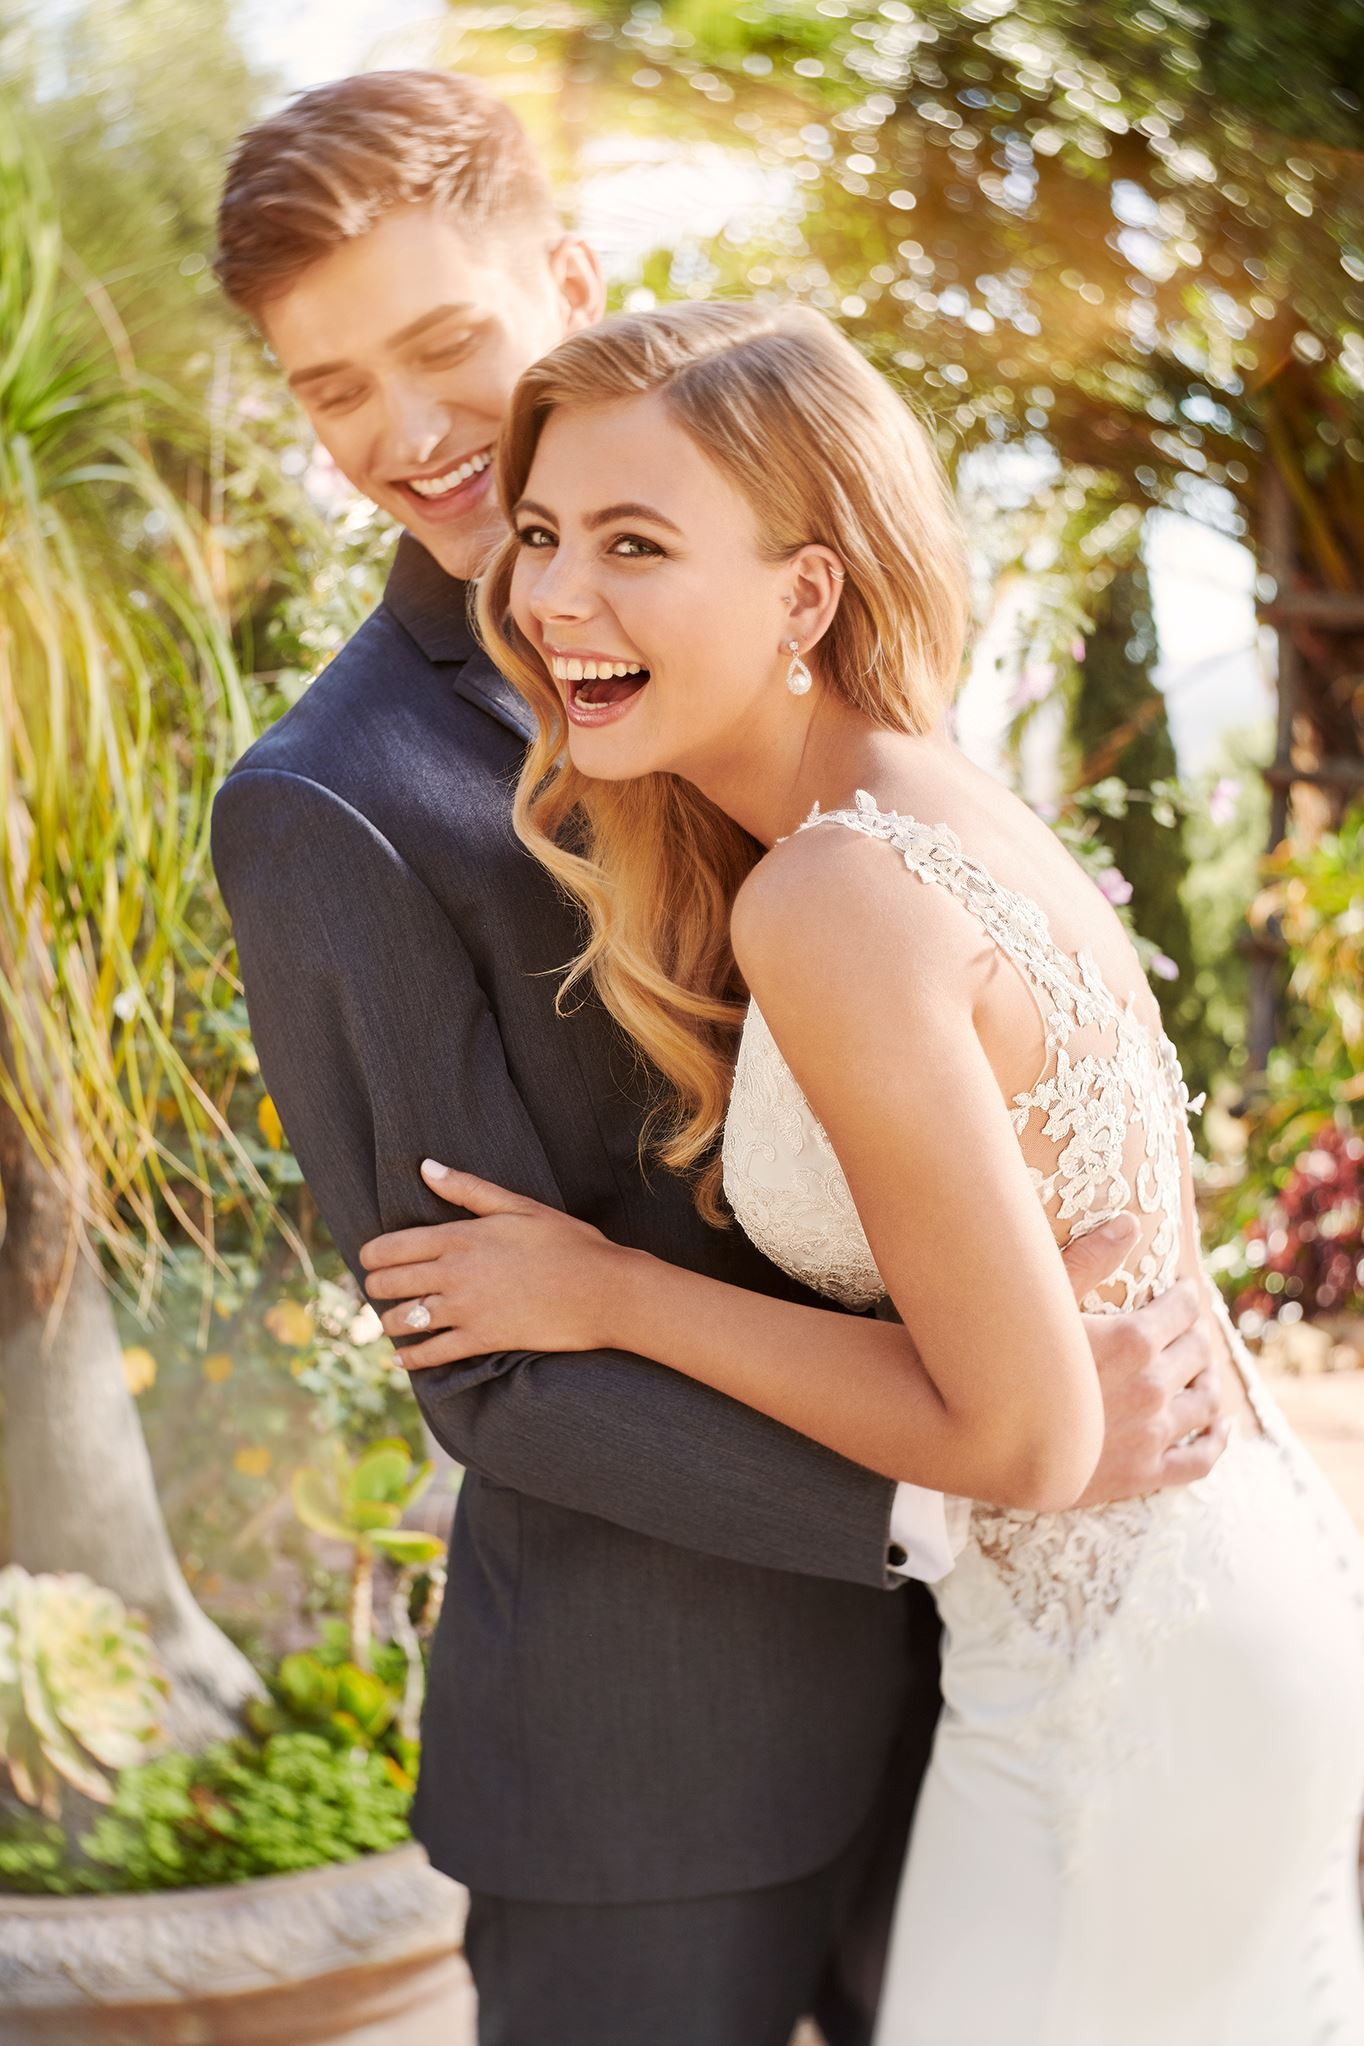 Blonde bride wearing lace wedding dress laughing with groom